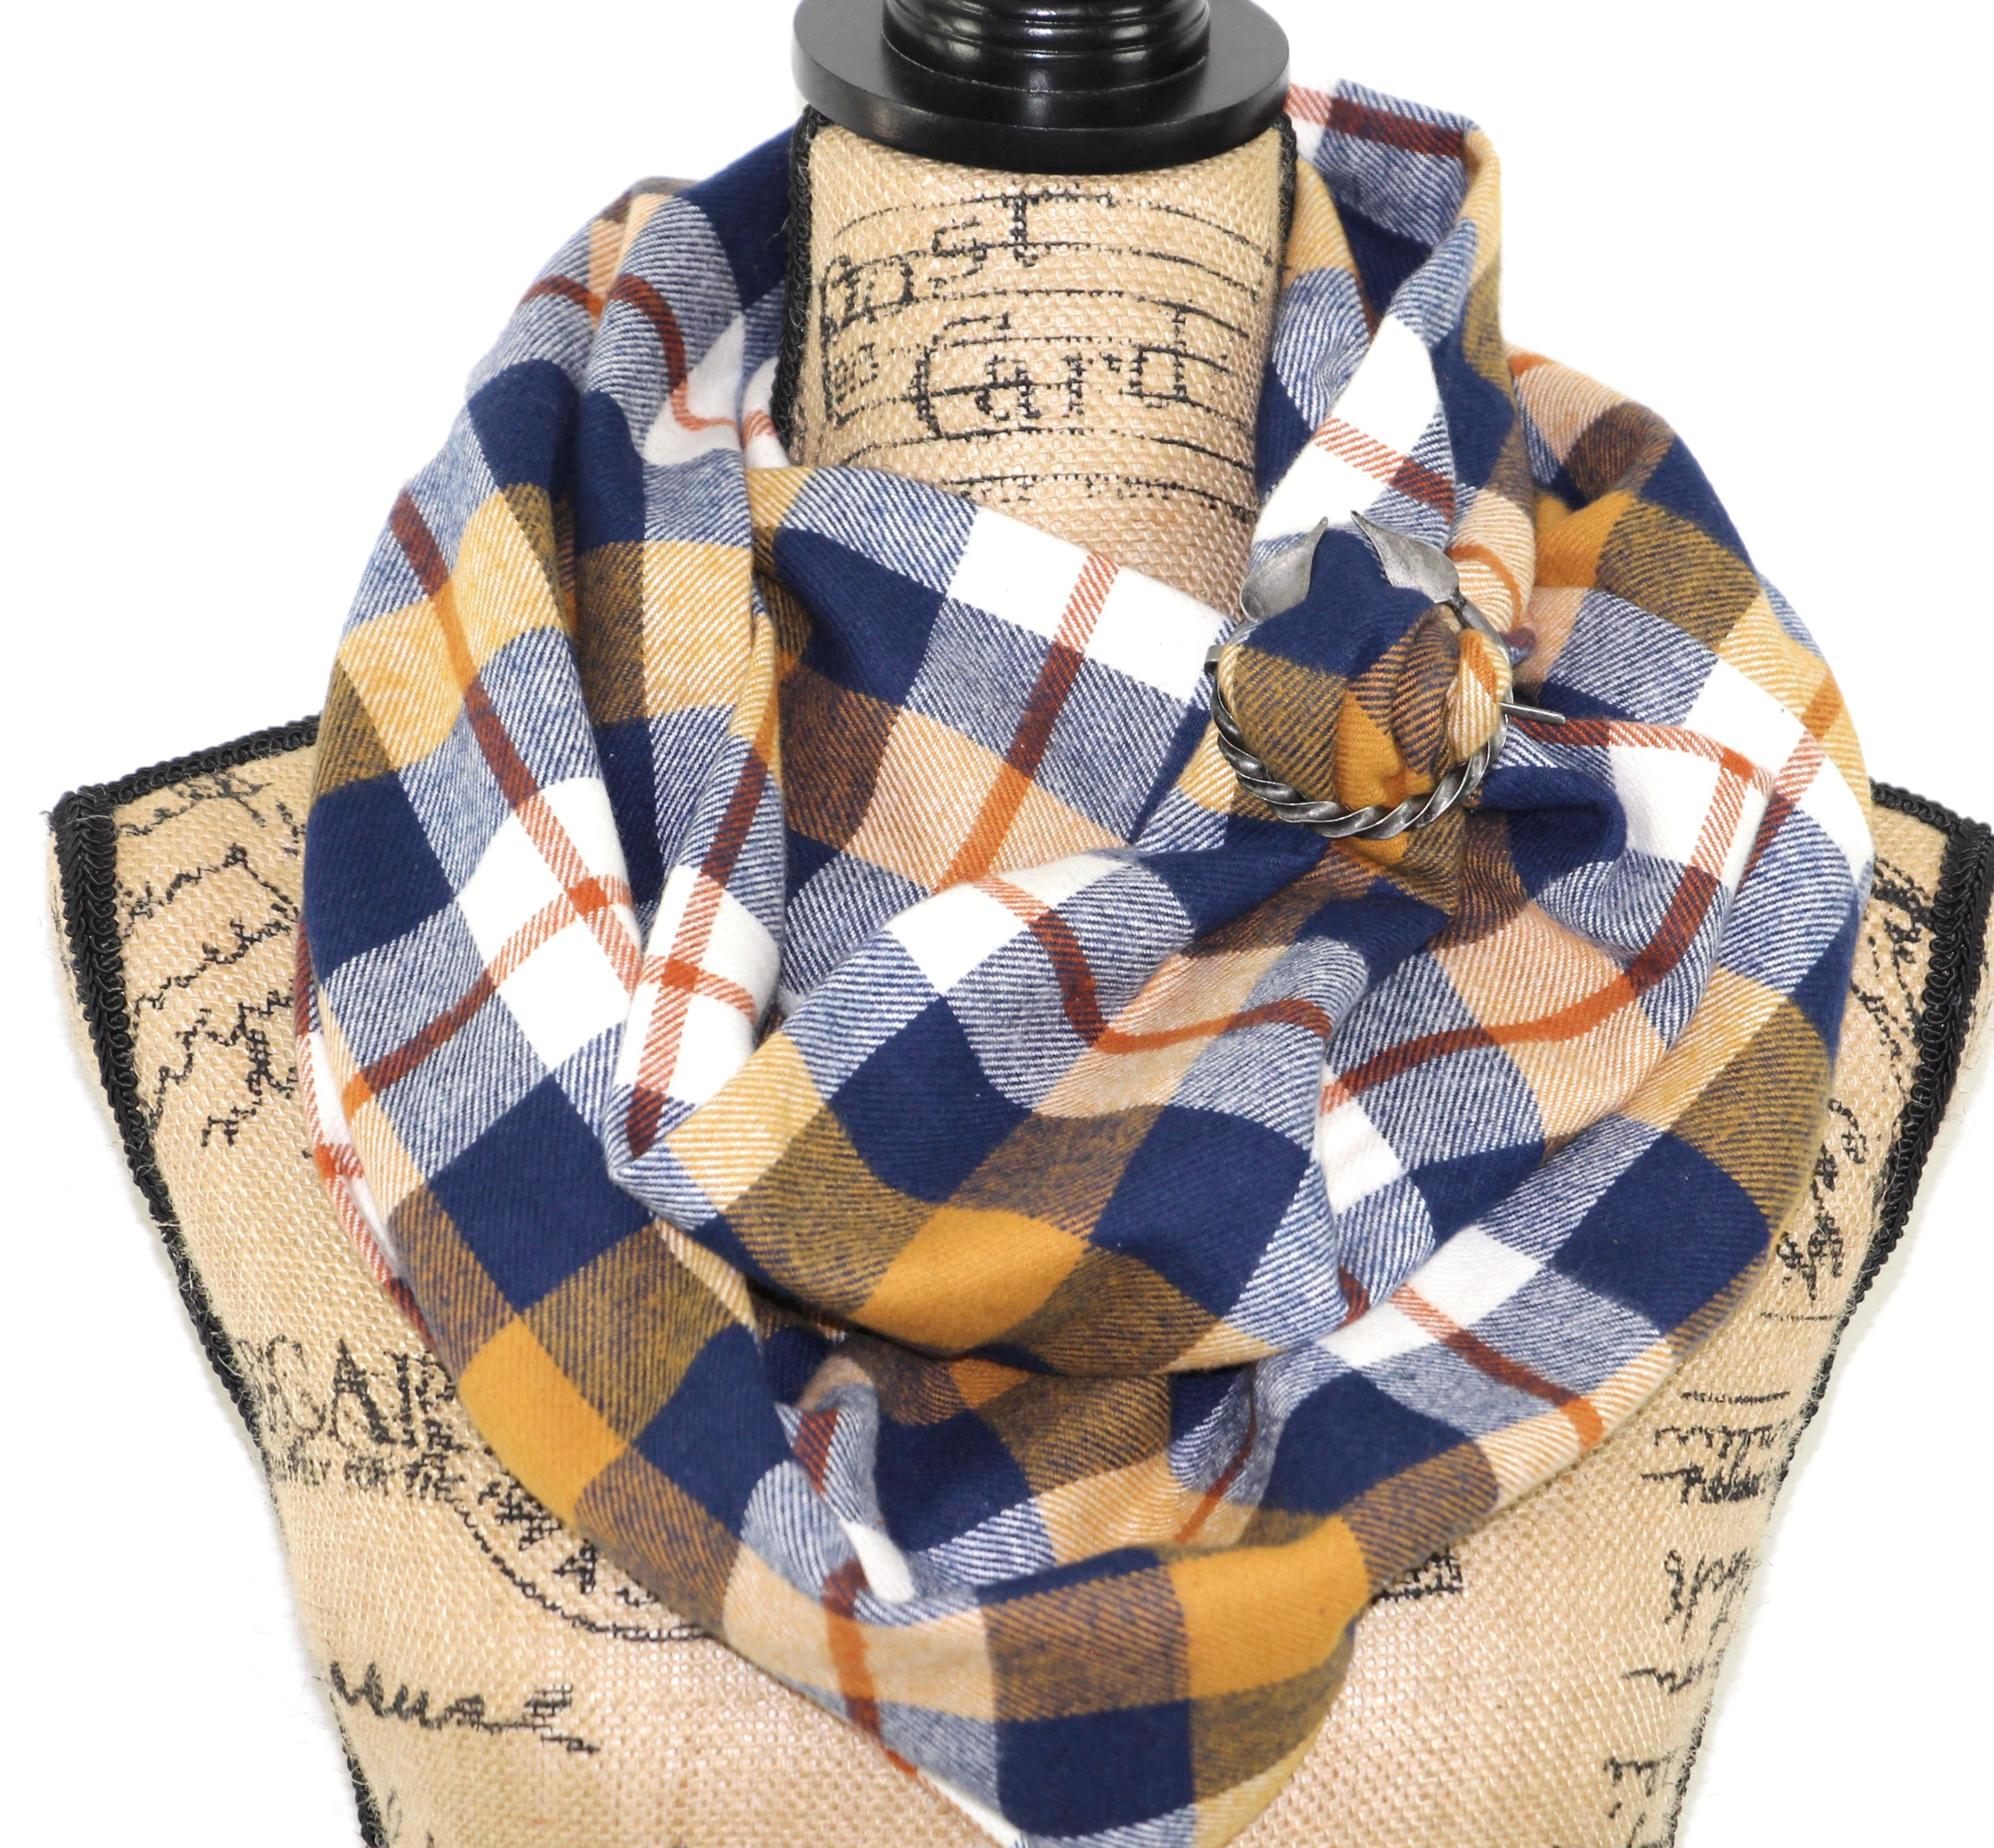 Navy Blue, Mustard Yellow, Burnt Orange, and White Flannel Plaid Infinity or Blanket Scarf